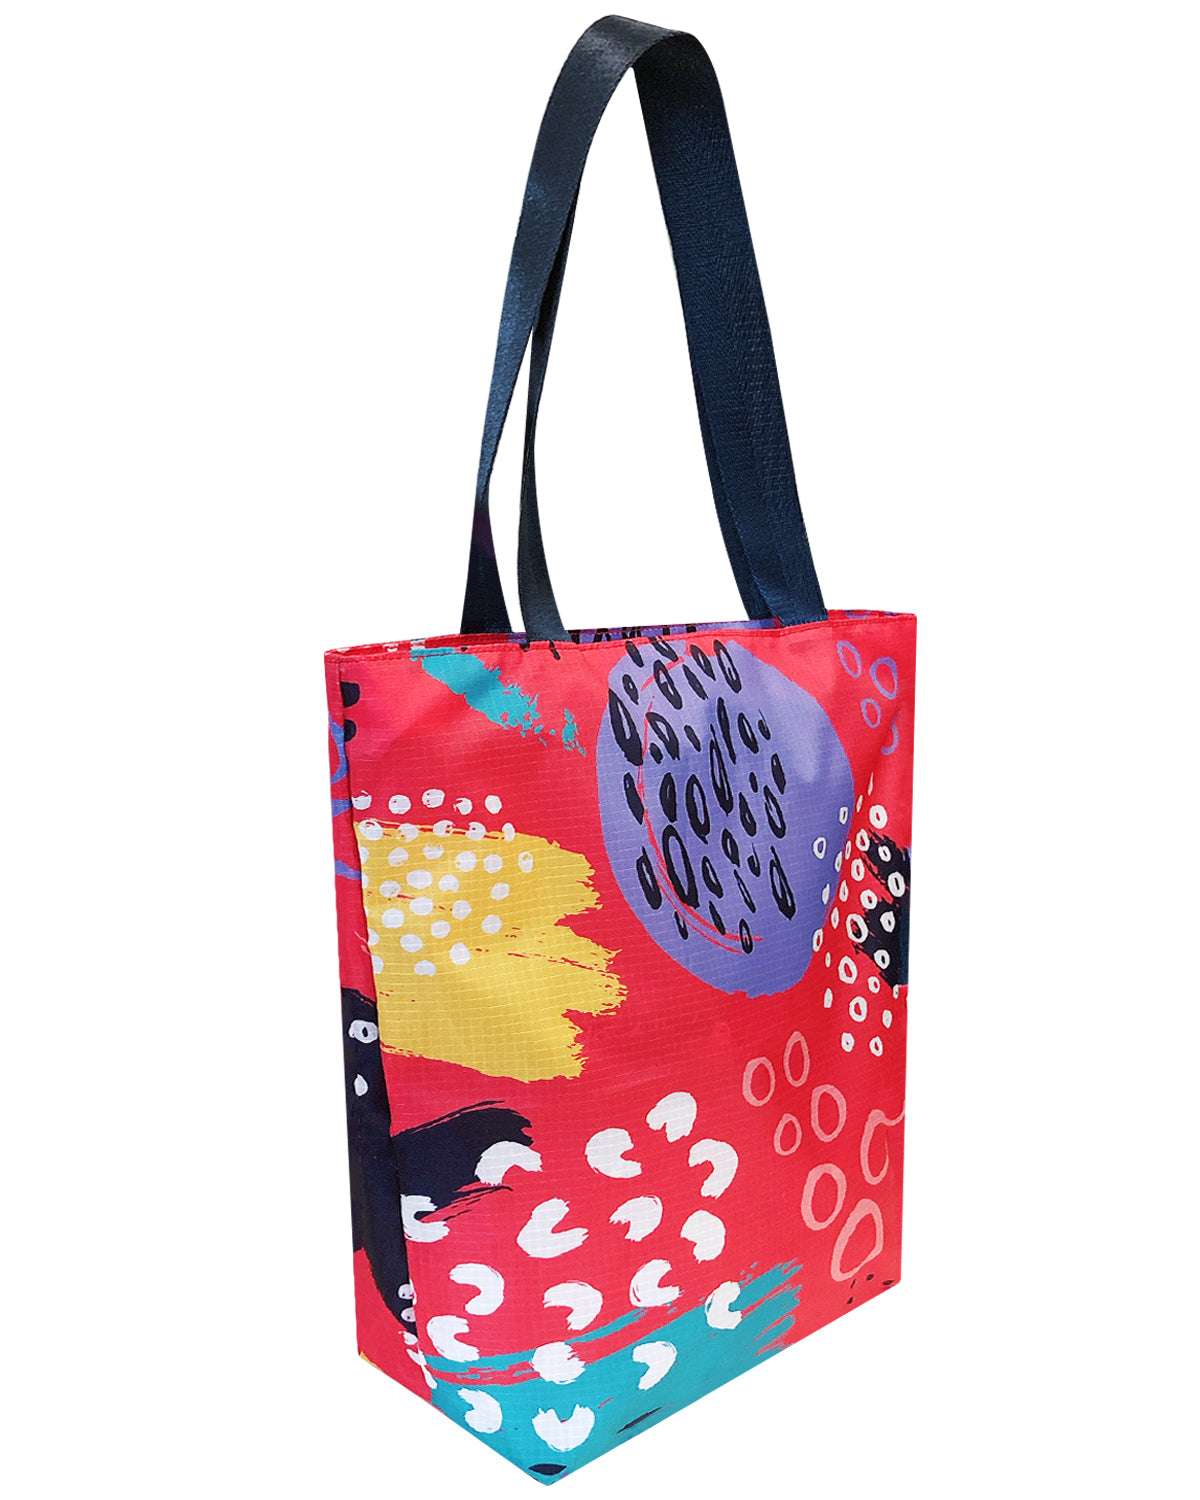 Wrapables Carryall Shopping Travel Tote Bag with Durable Ripstop Polyester - Foldable, Waterproof, and OEKO-TEX Certified